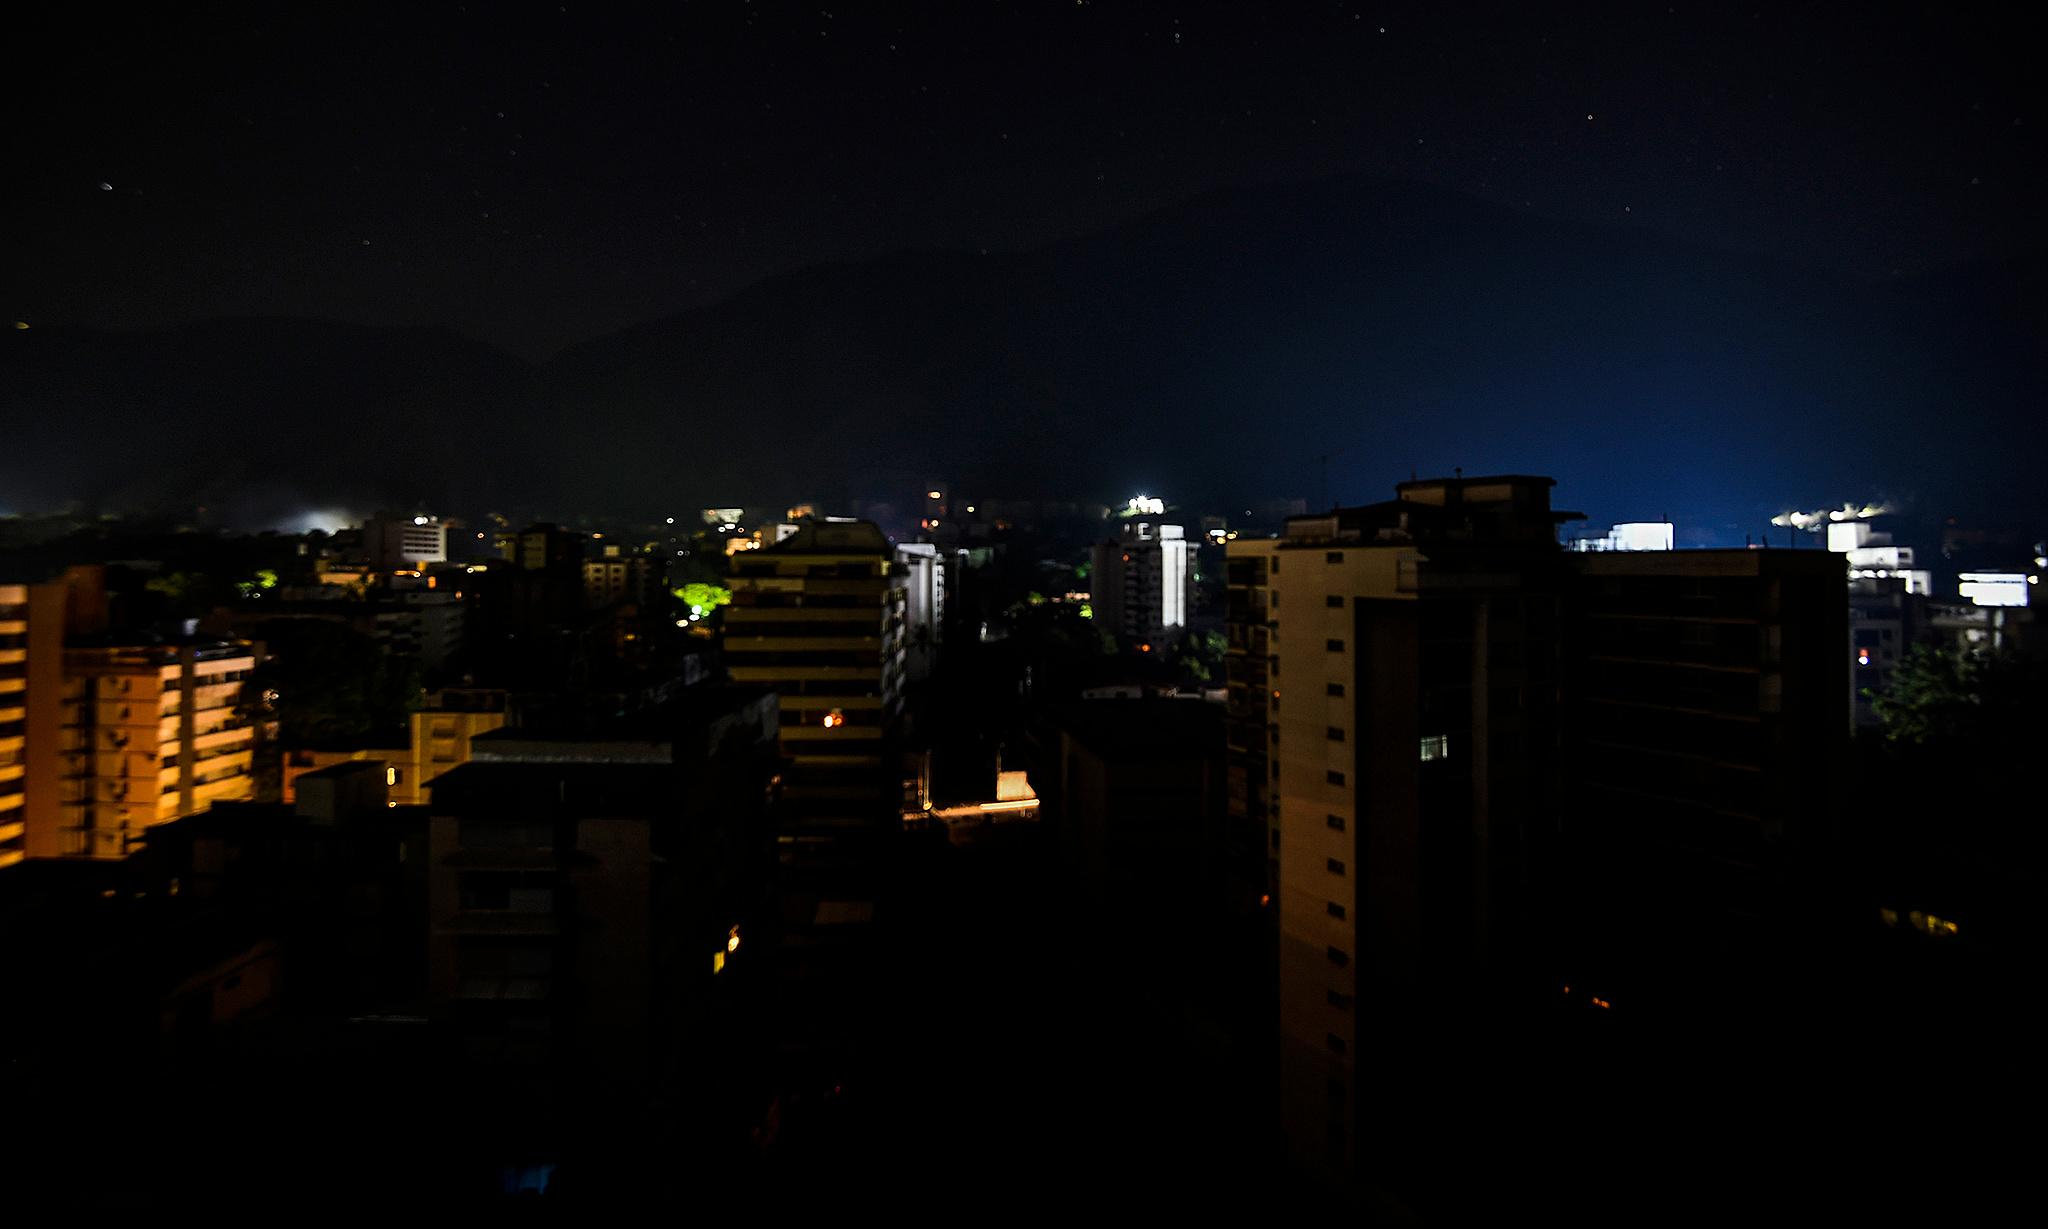 Venezuela: call for calm amid blackouts and anti-Maduro protests